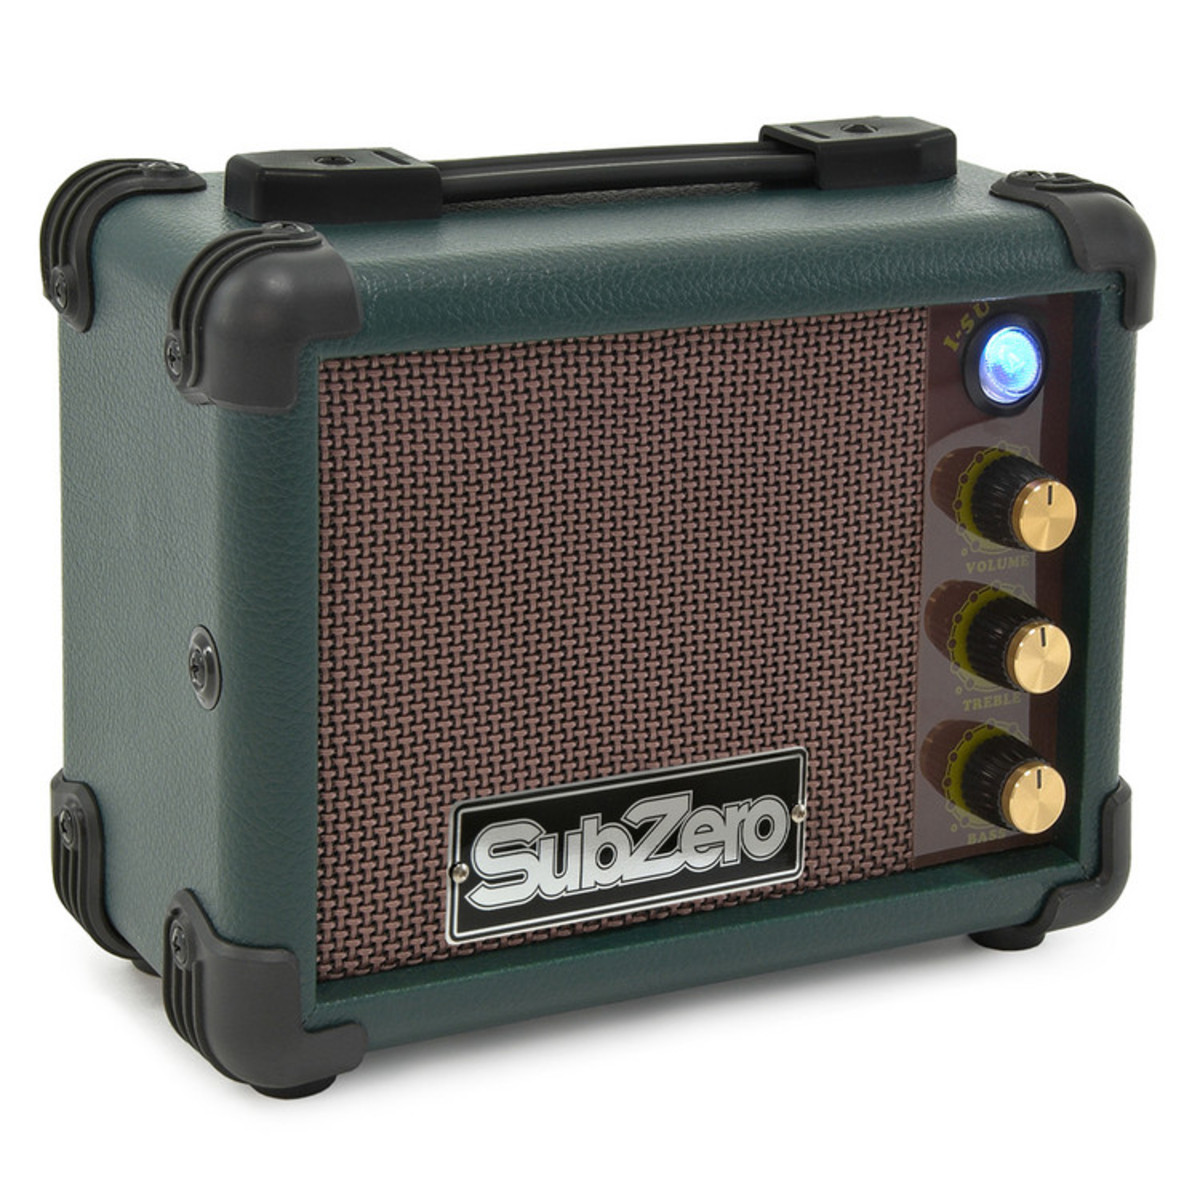 subzero micro ukulele amp vintage green at. Black Bedroom Furniture Sets. Home Design Ideas